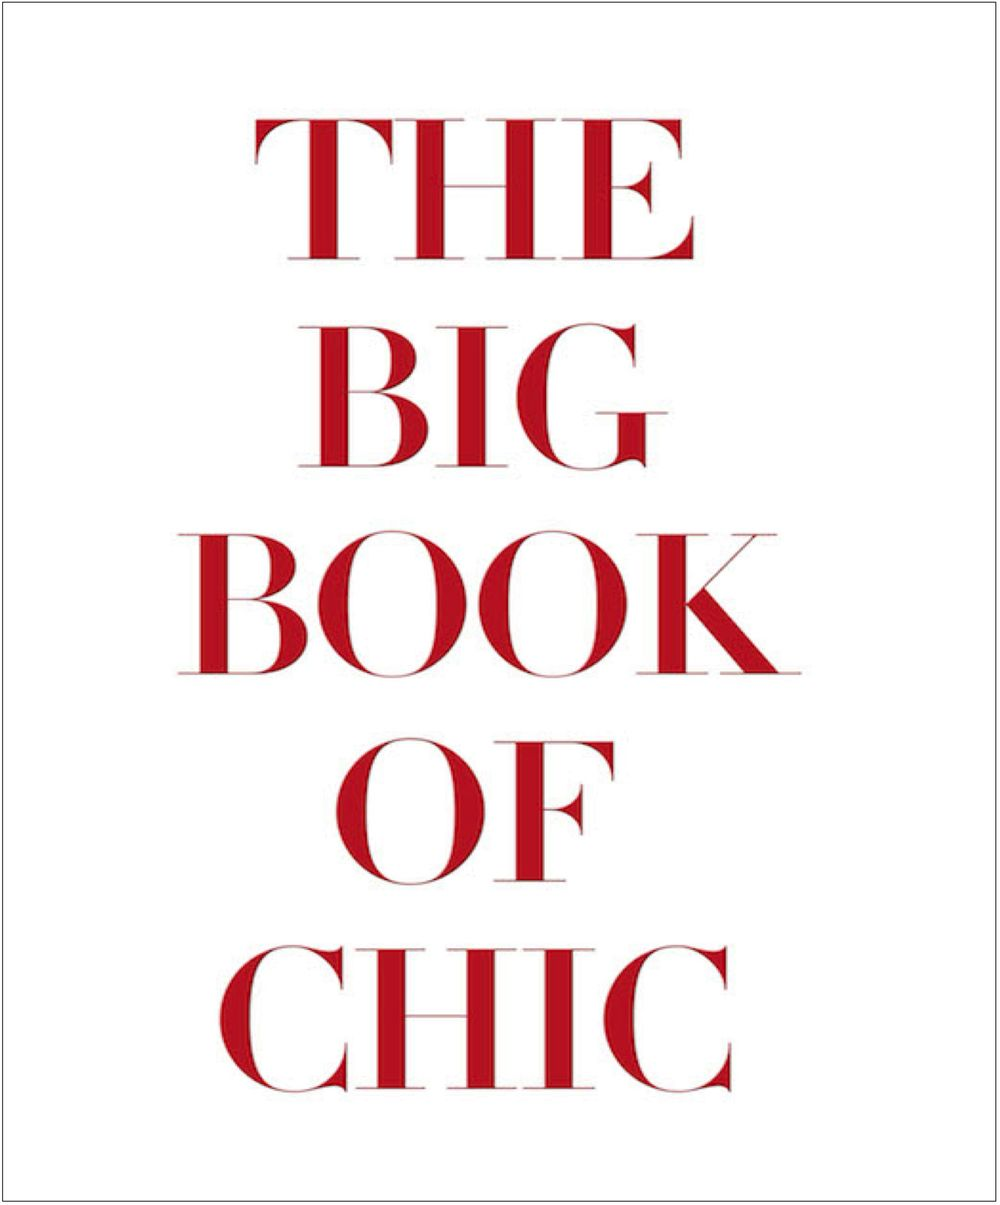 Big Book of Chic Cover FINAL.jpg